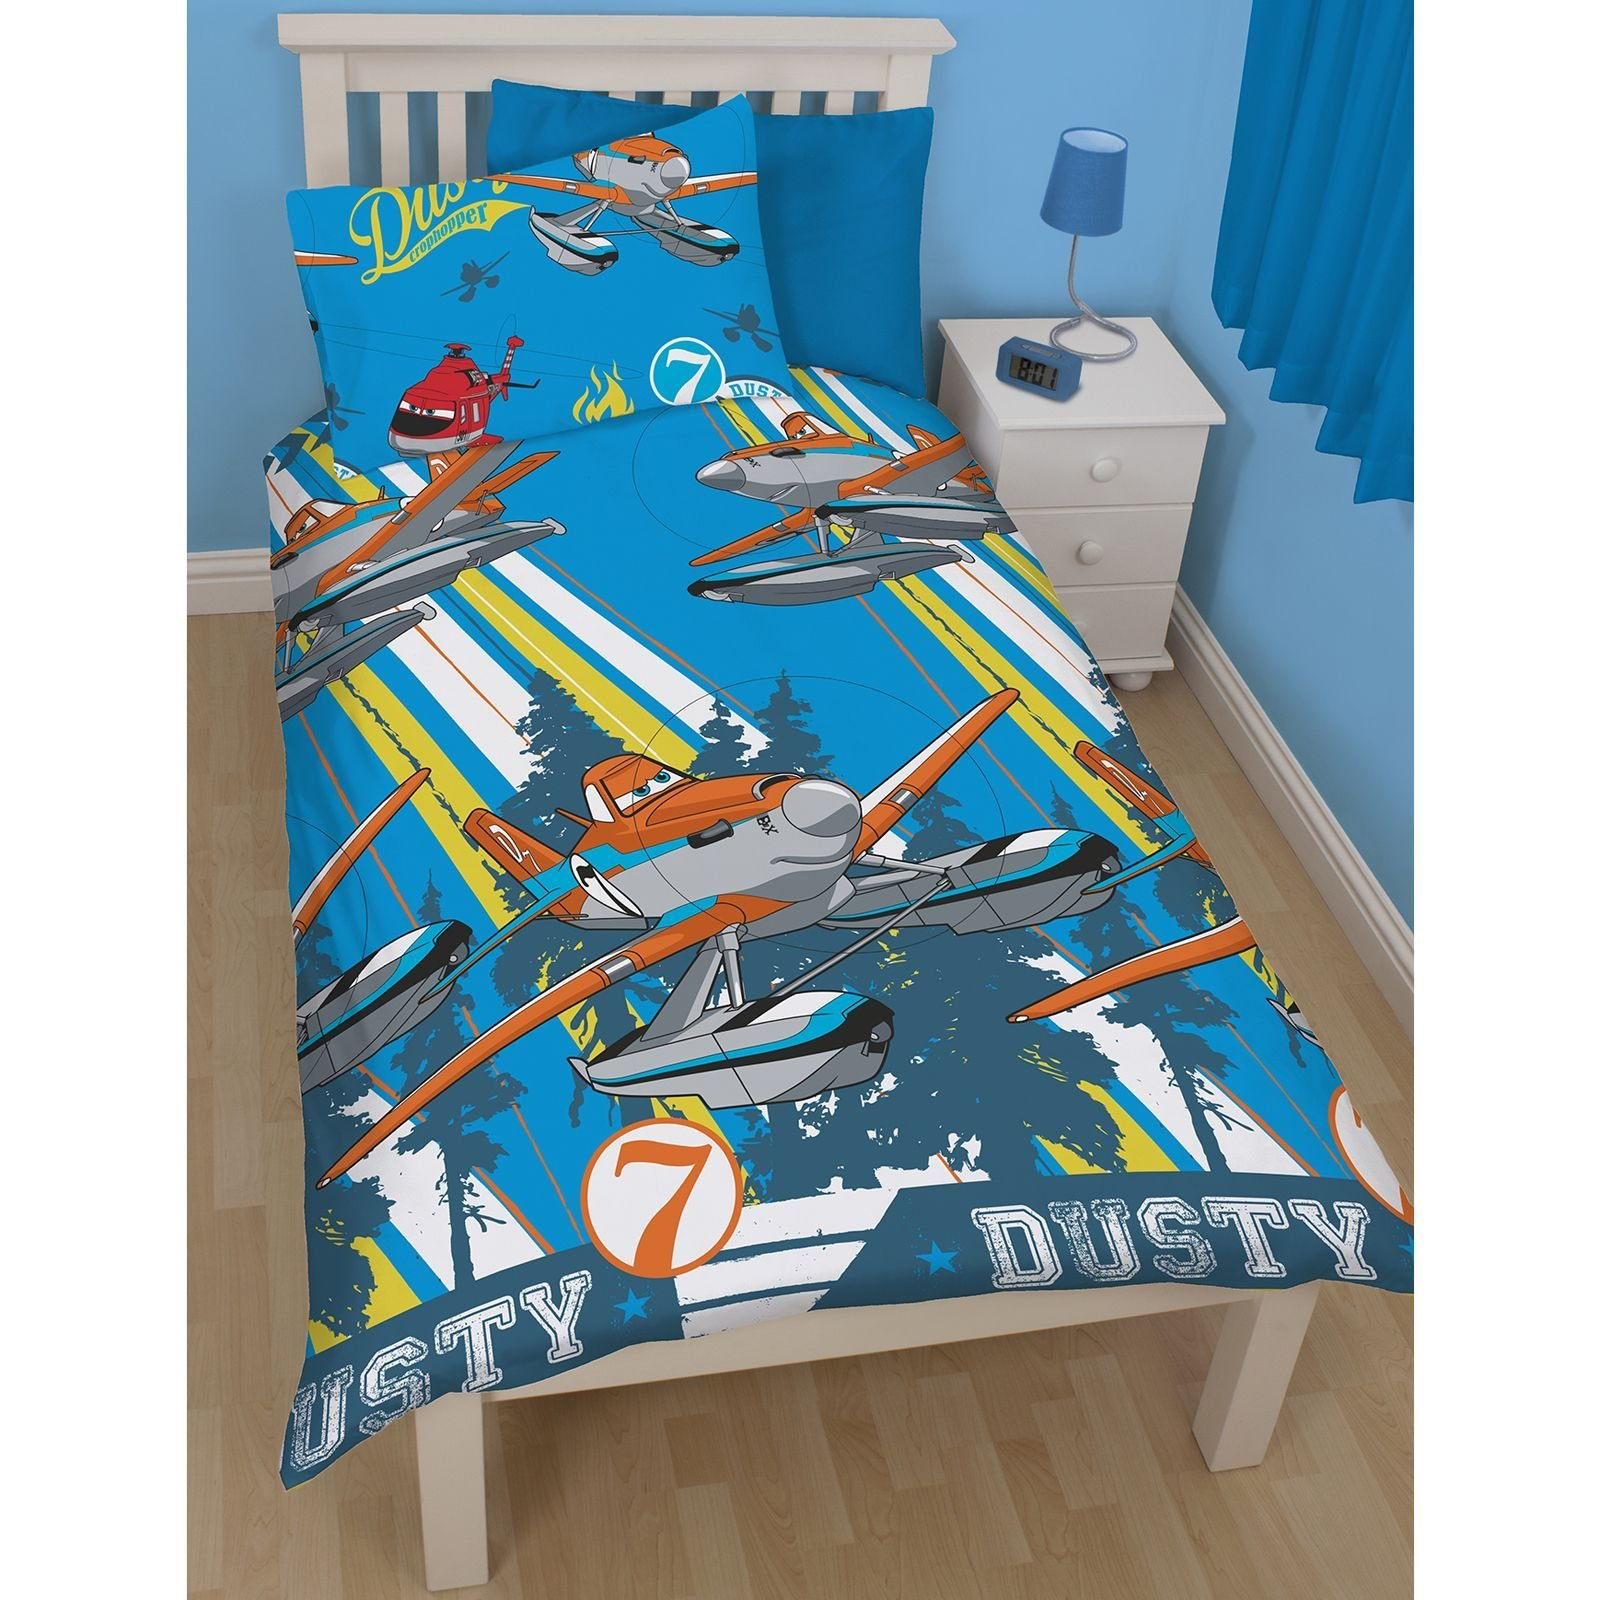 Best Disney Planes Bedding And Bedroom Accessories – Free With Pictures